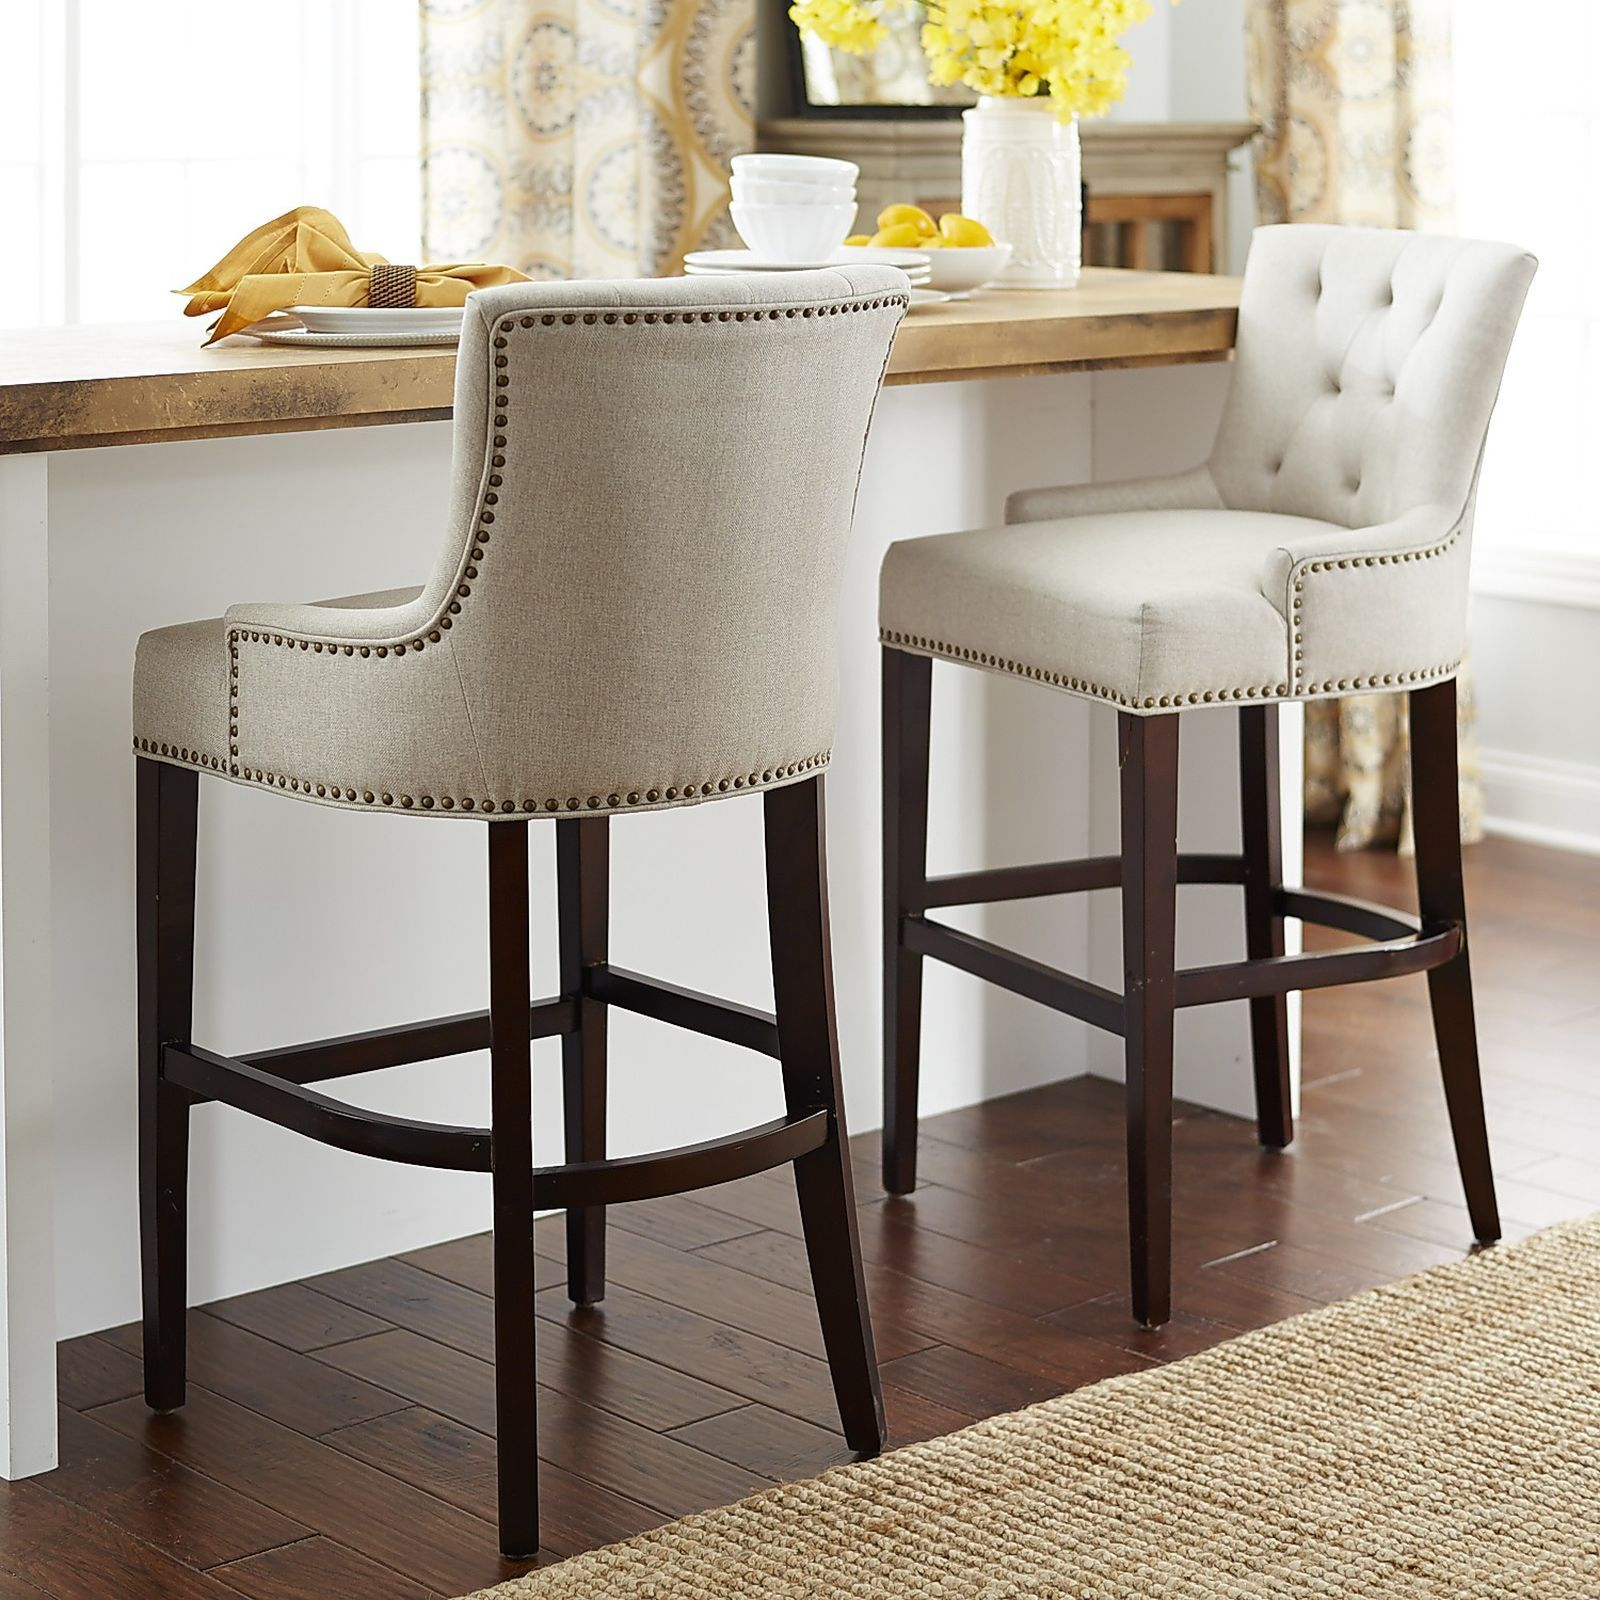 Ava flax counter bar stool ava stools and elegant for Most comfortable bar stools